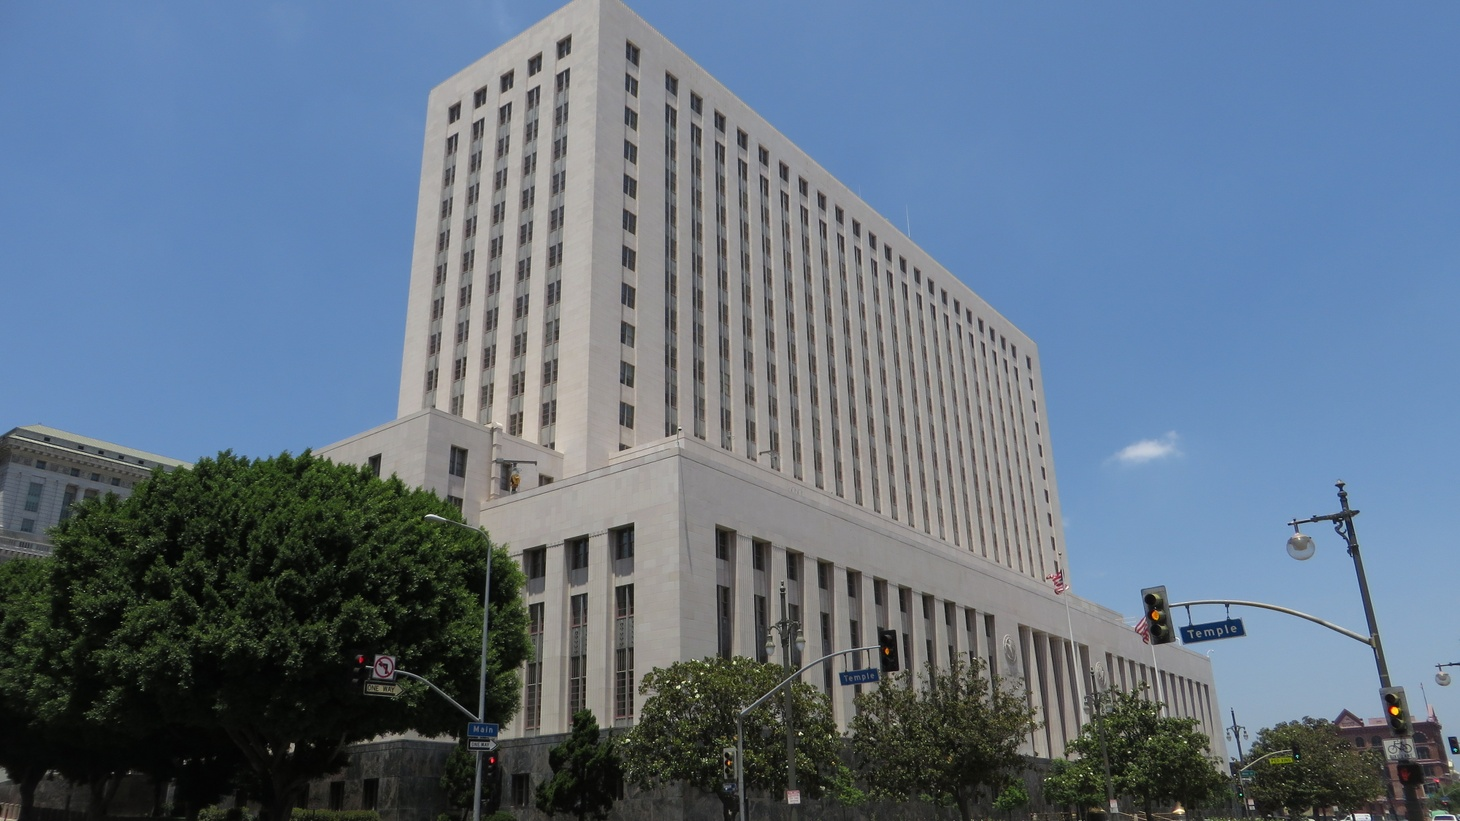 United States Court House, Los Angeles, California.